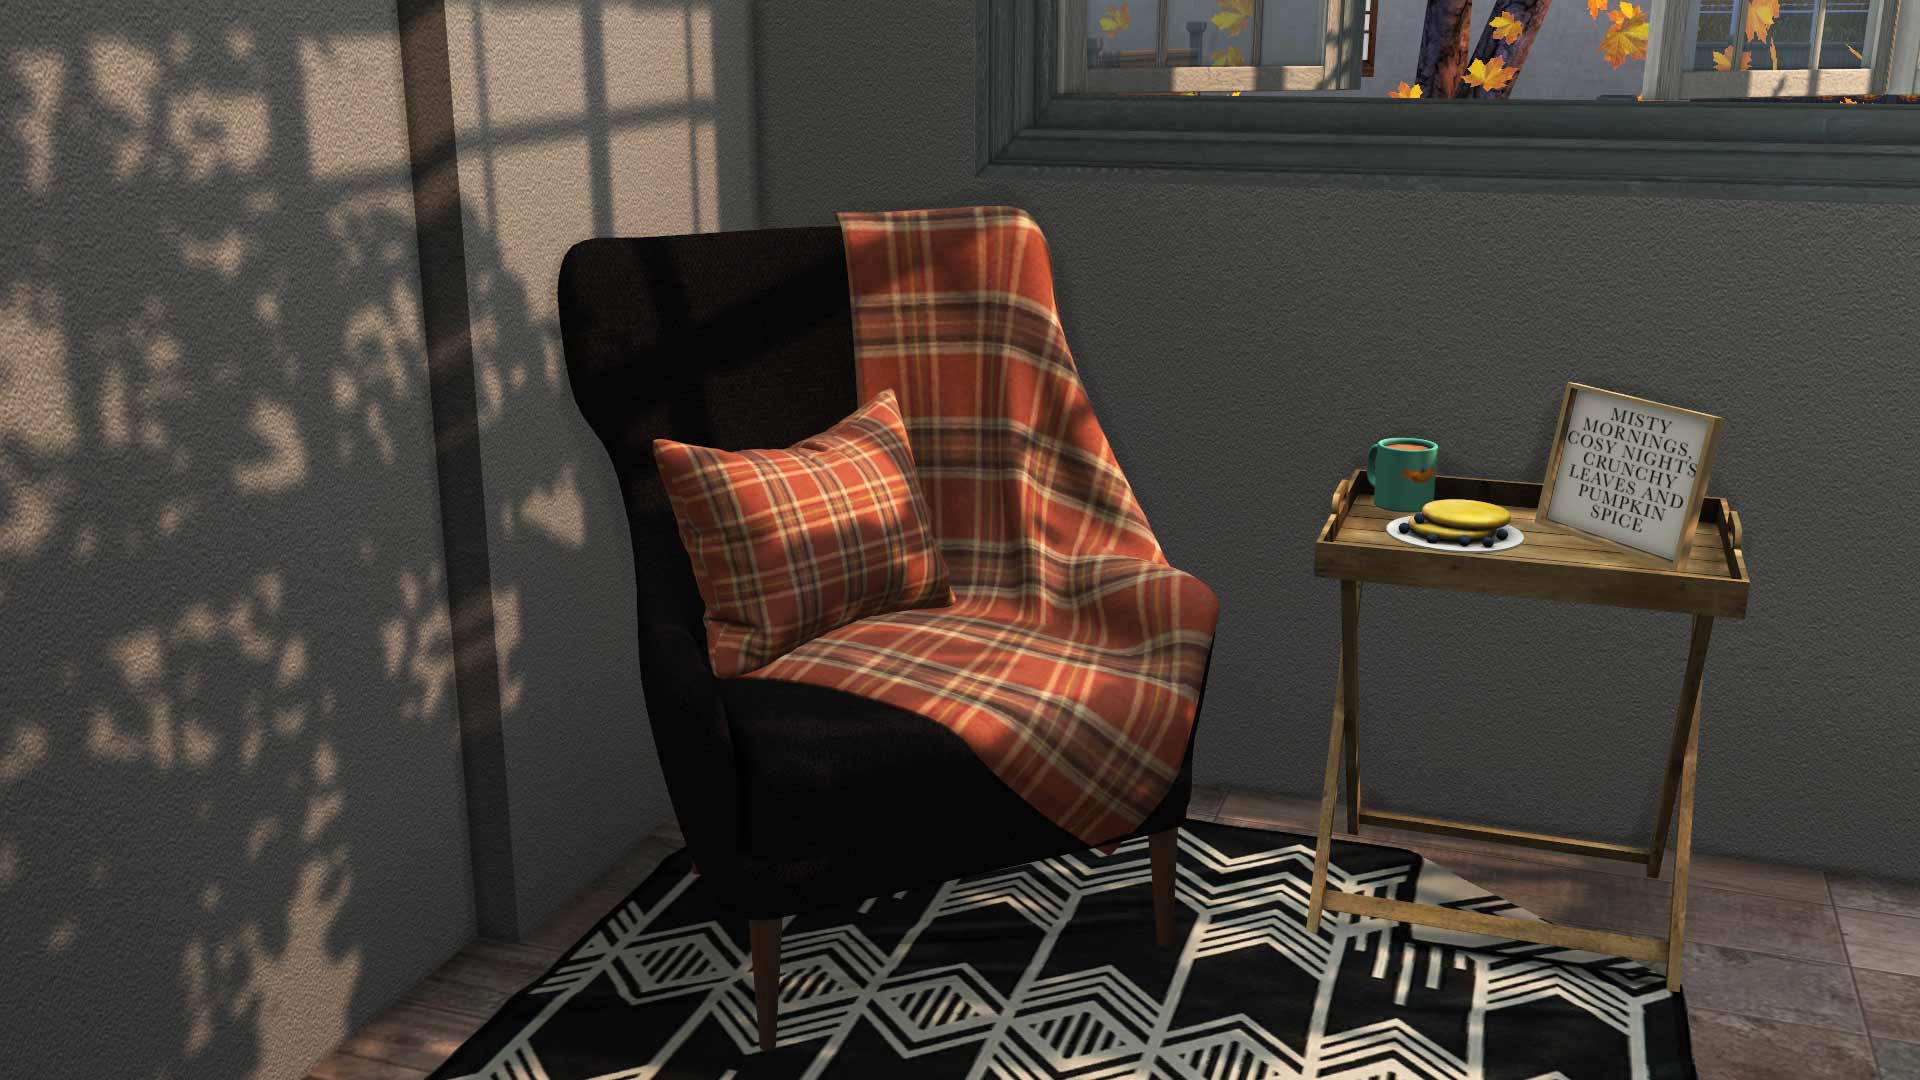 Cozy Autumn Seating, high quality sims 4 cc, sunkissedlilacs, free sims 4 furniture, sims 4 custom content,